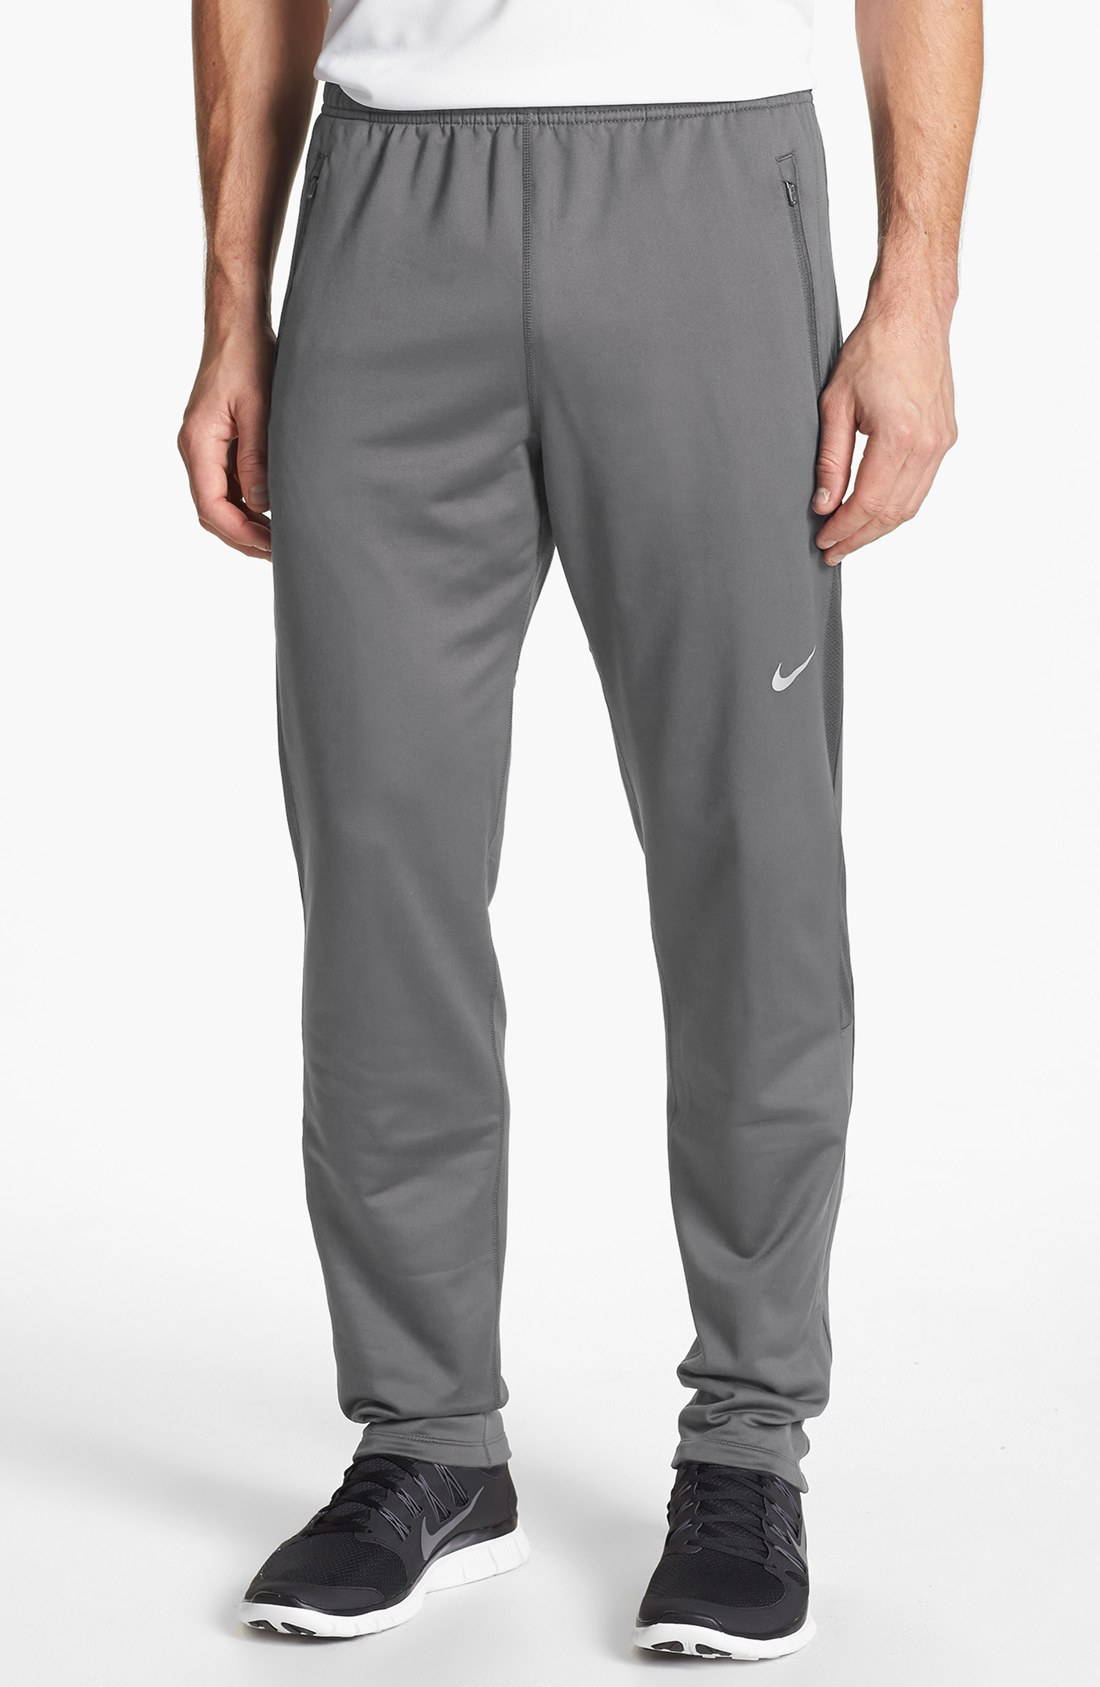 Gray Nike Sweatpants For Men | www.imgkid.com - The Image Kid Has It!